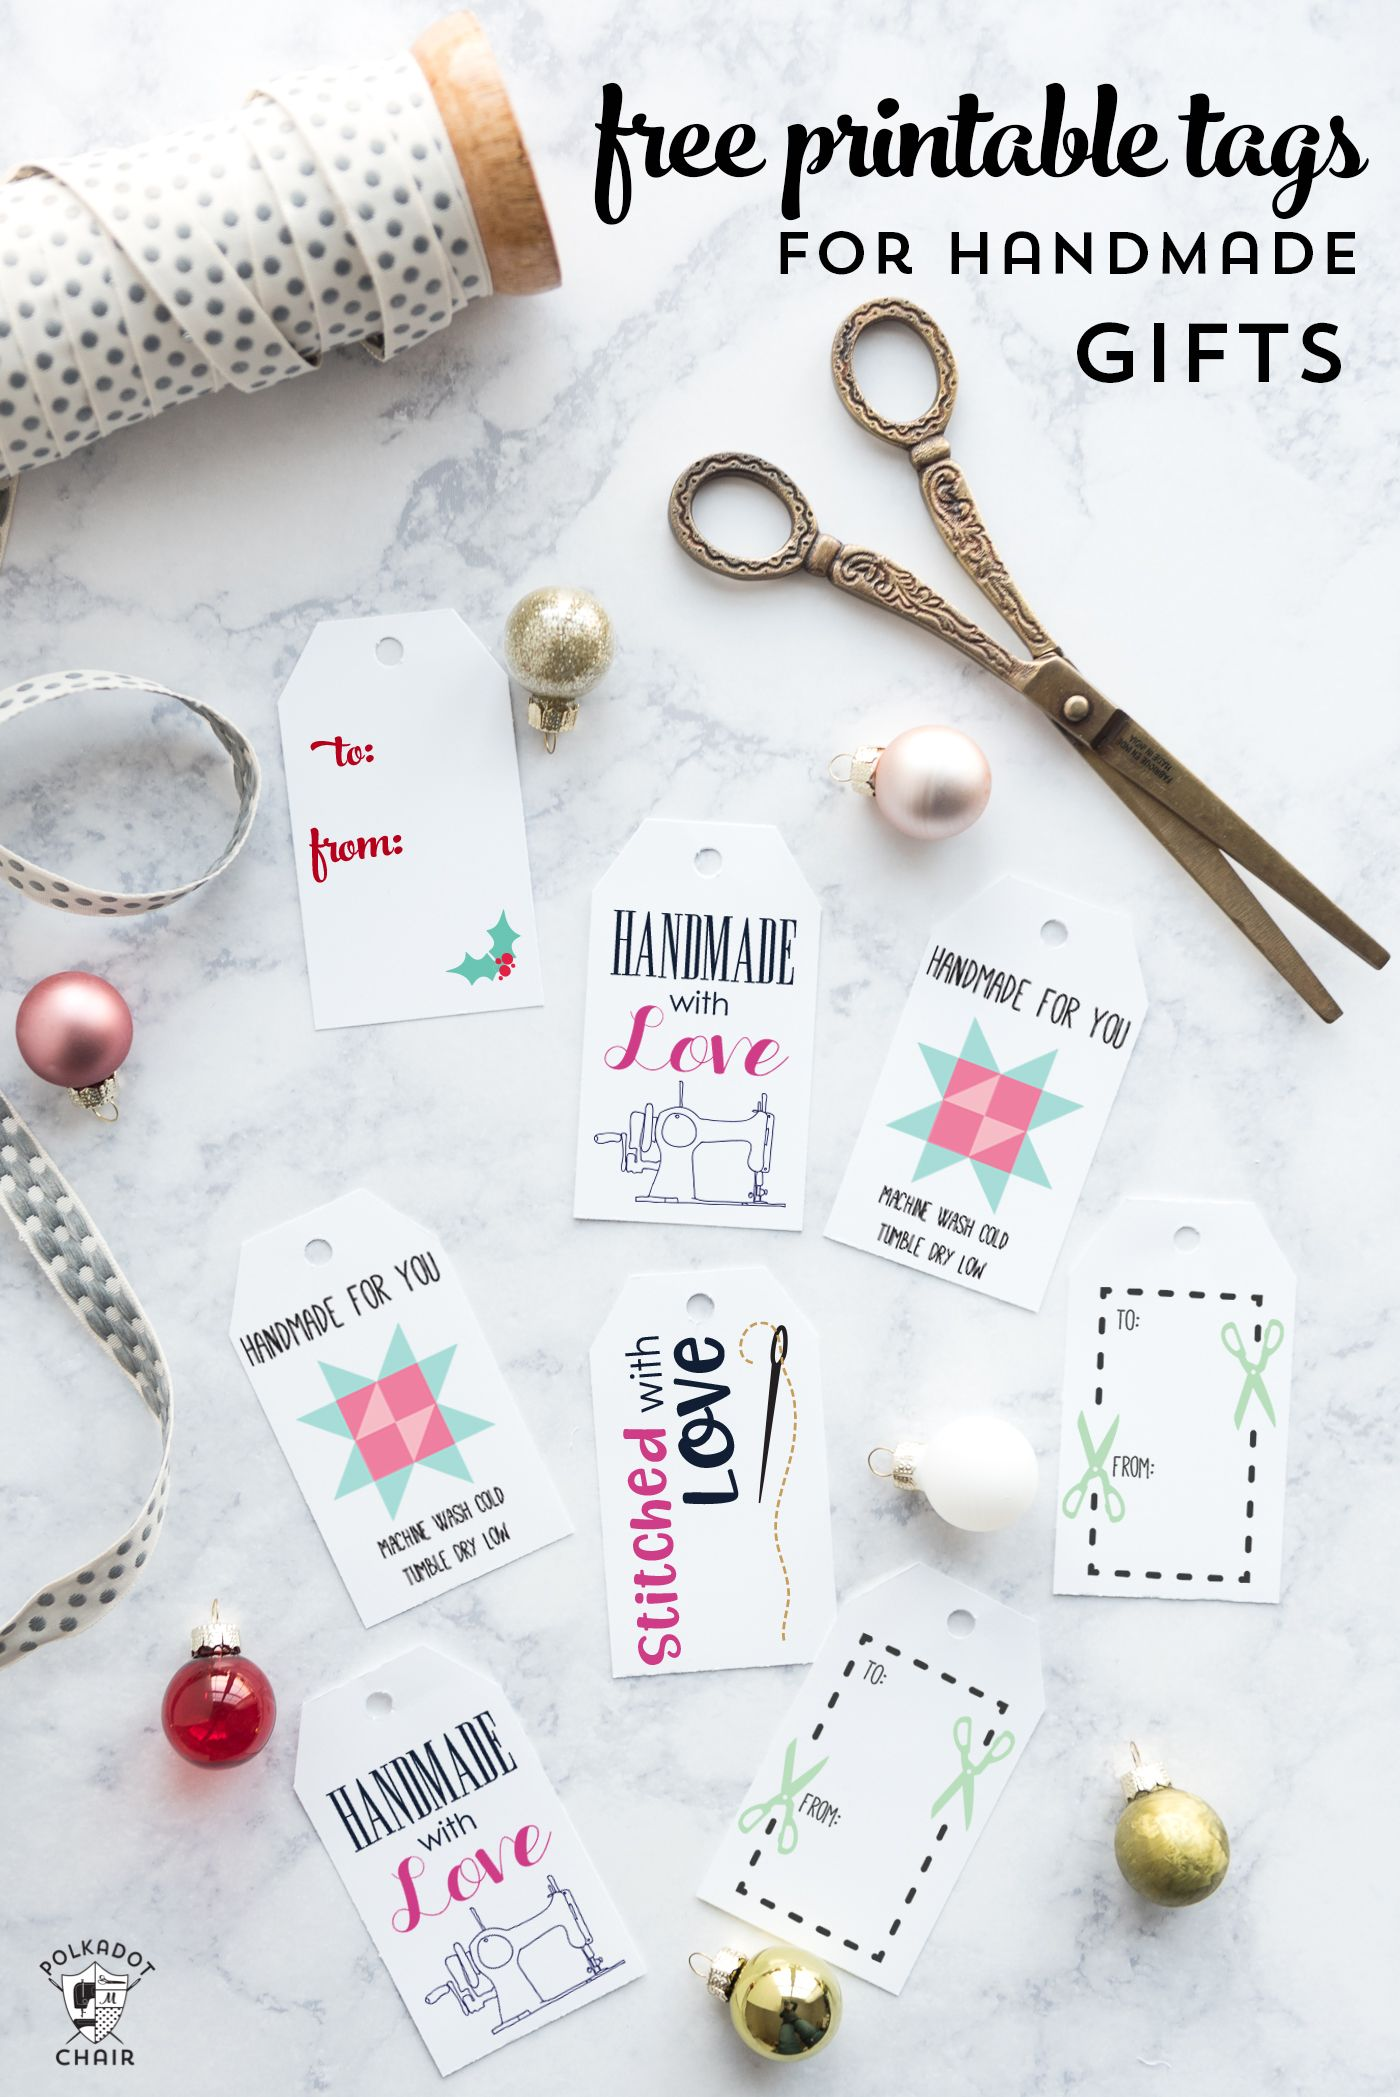 10+ Free Printable Gift Tags Perfect for Handmade Gifts | Gift Boxes ...